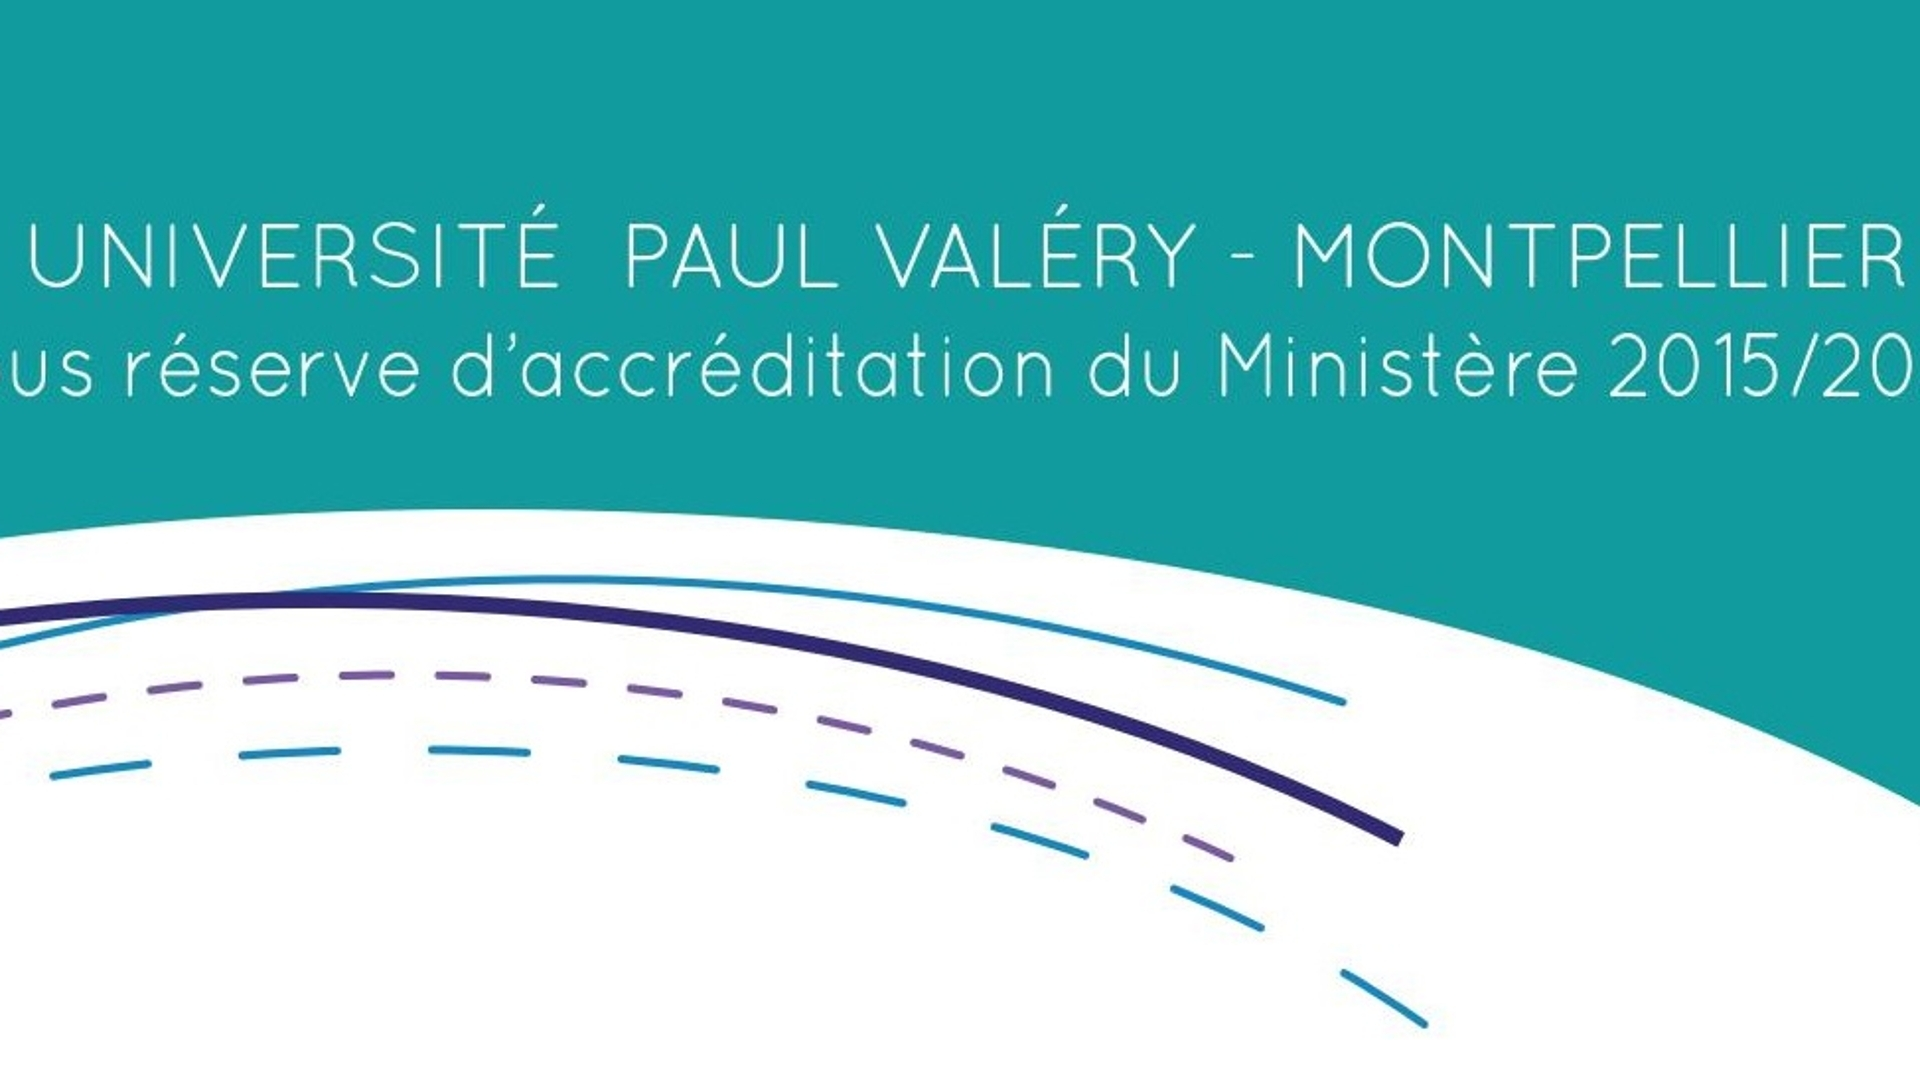 Calendrier Paul Valery.Formation A Distance Licence En Arts Lettres Langues